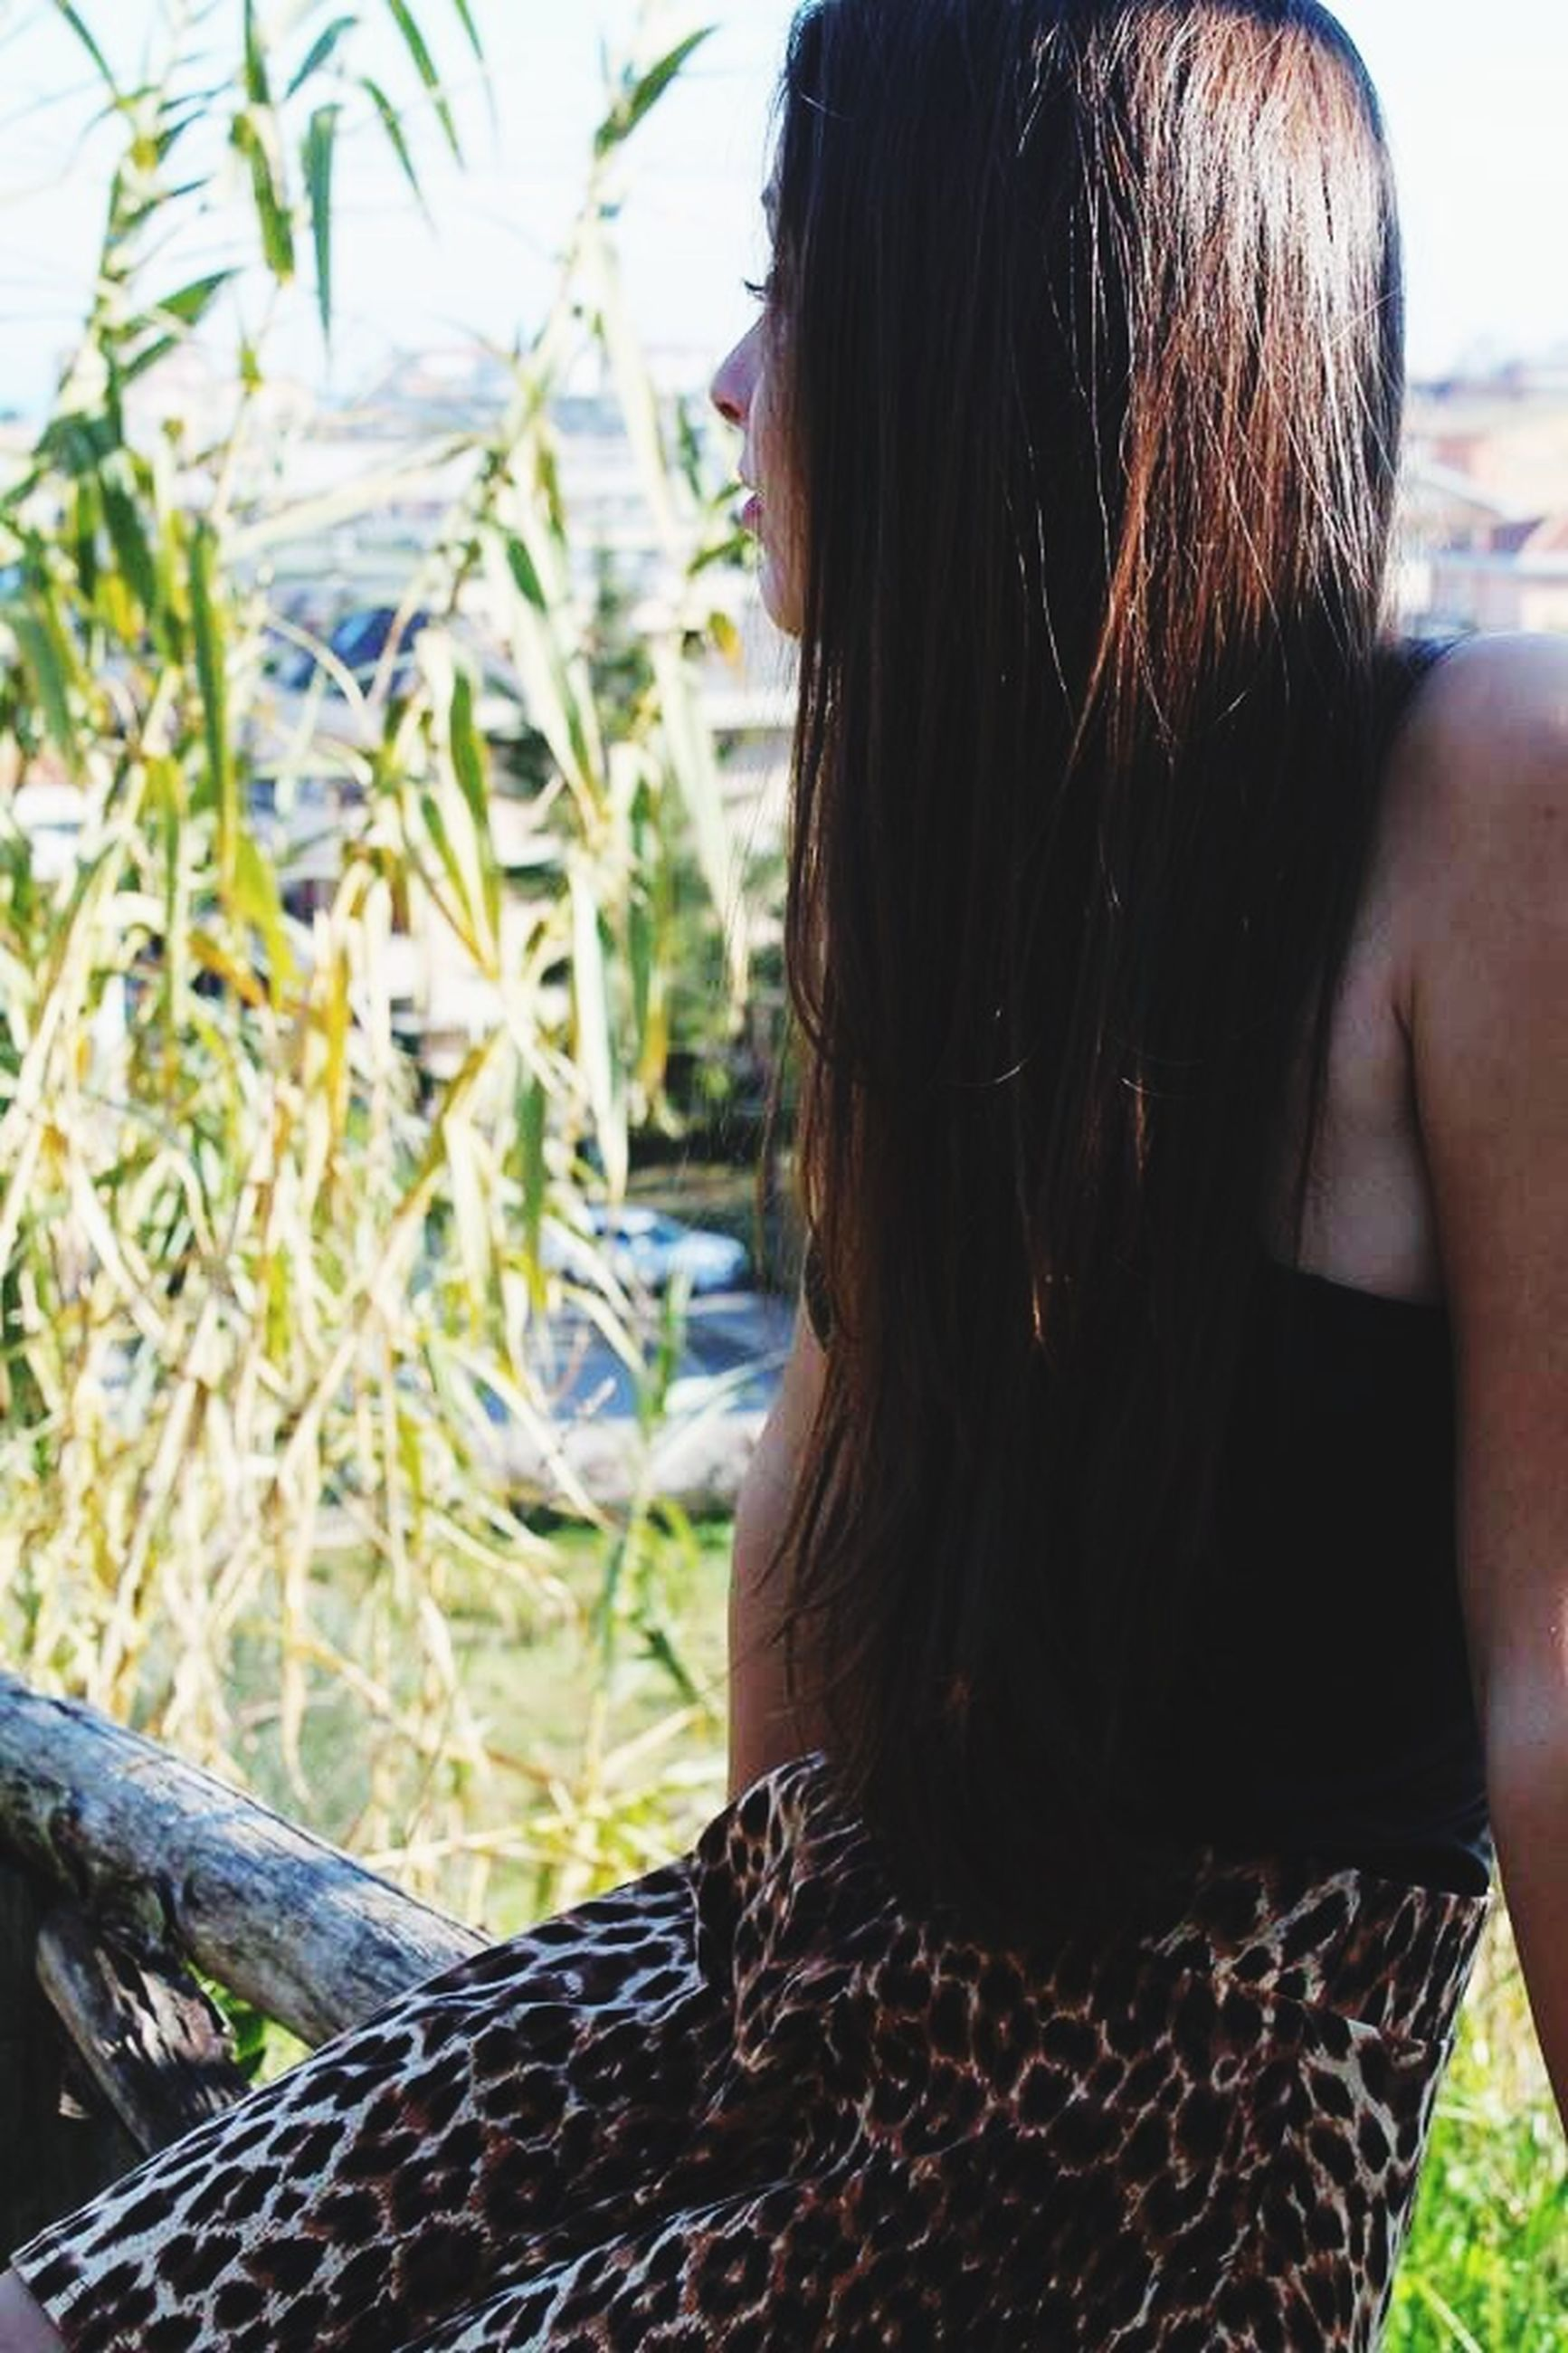 lifestyles, long hair, leisure activity, young women, young adult, person, headshot, brown hair, focus on foreground, rear view, casual clothing, day, side view, outdoors, nature, close-up